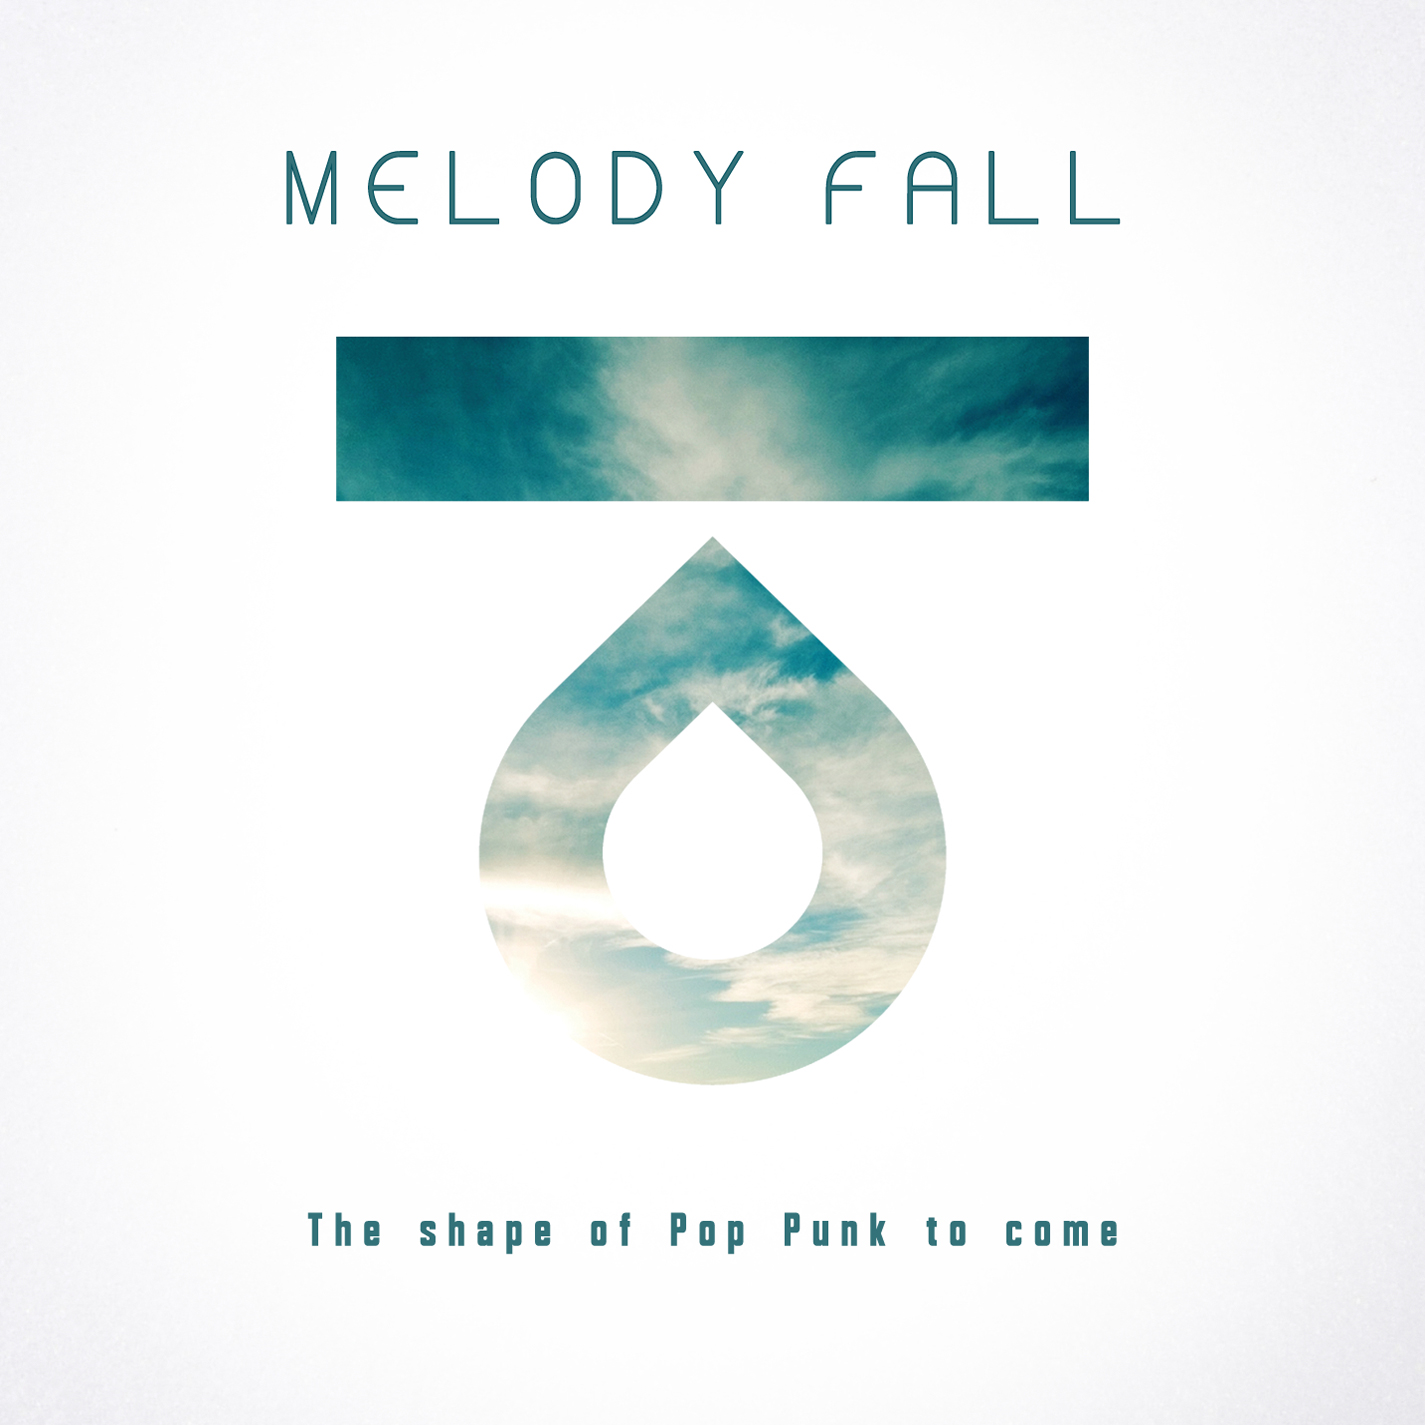 Melody Fall – The shape of pop punk to come